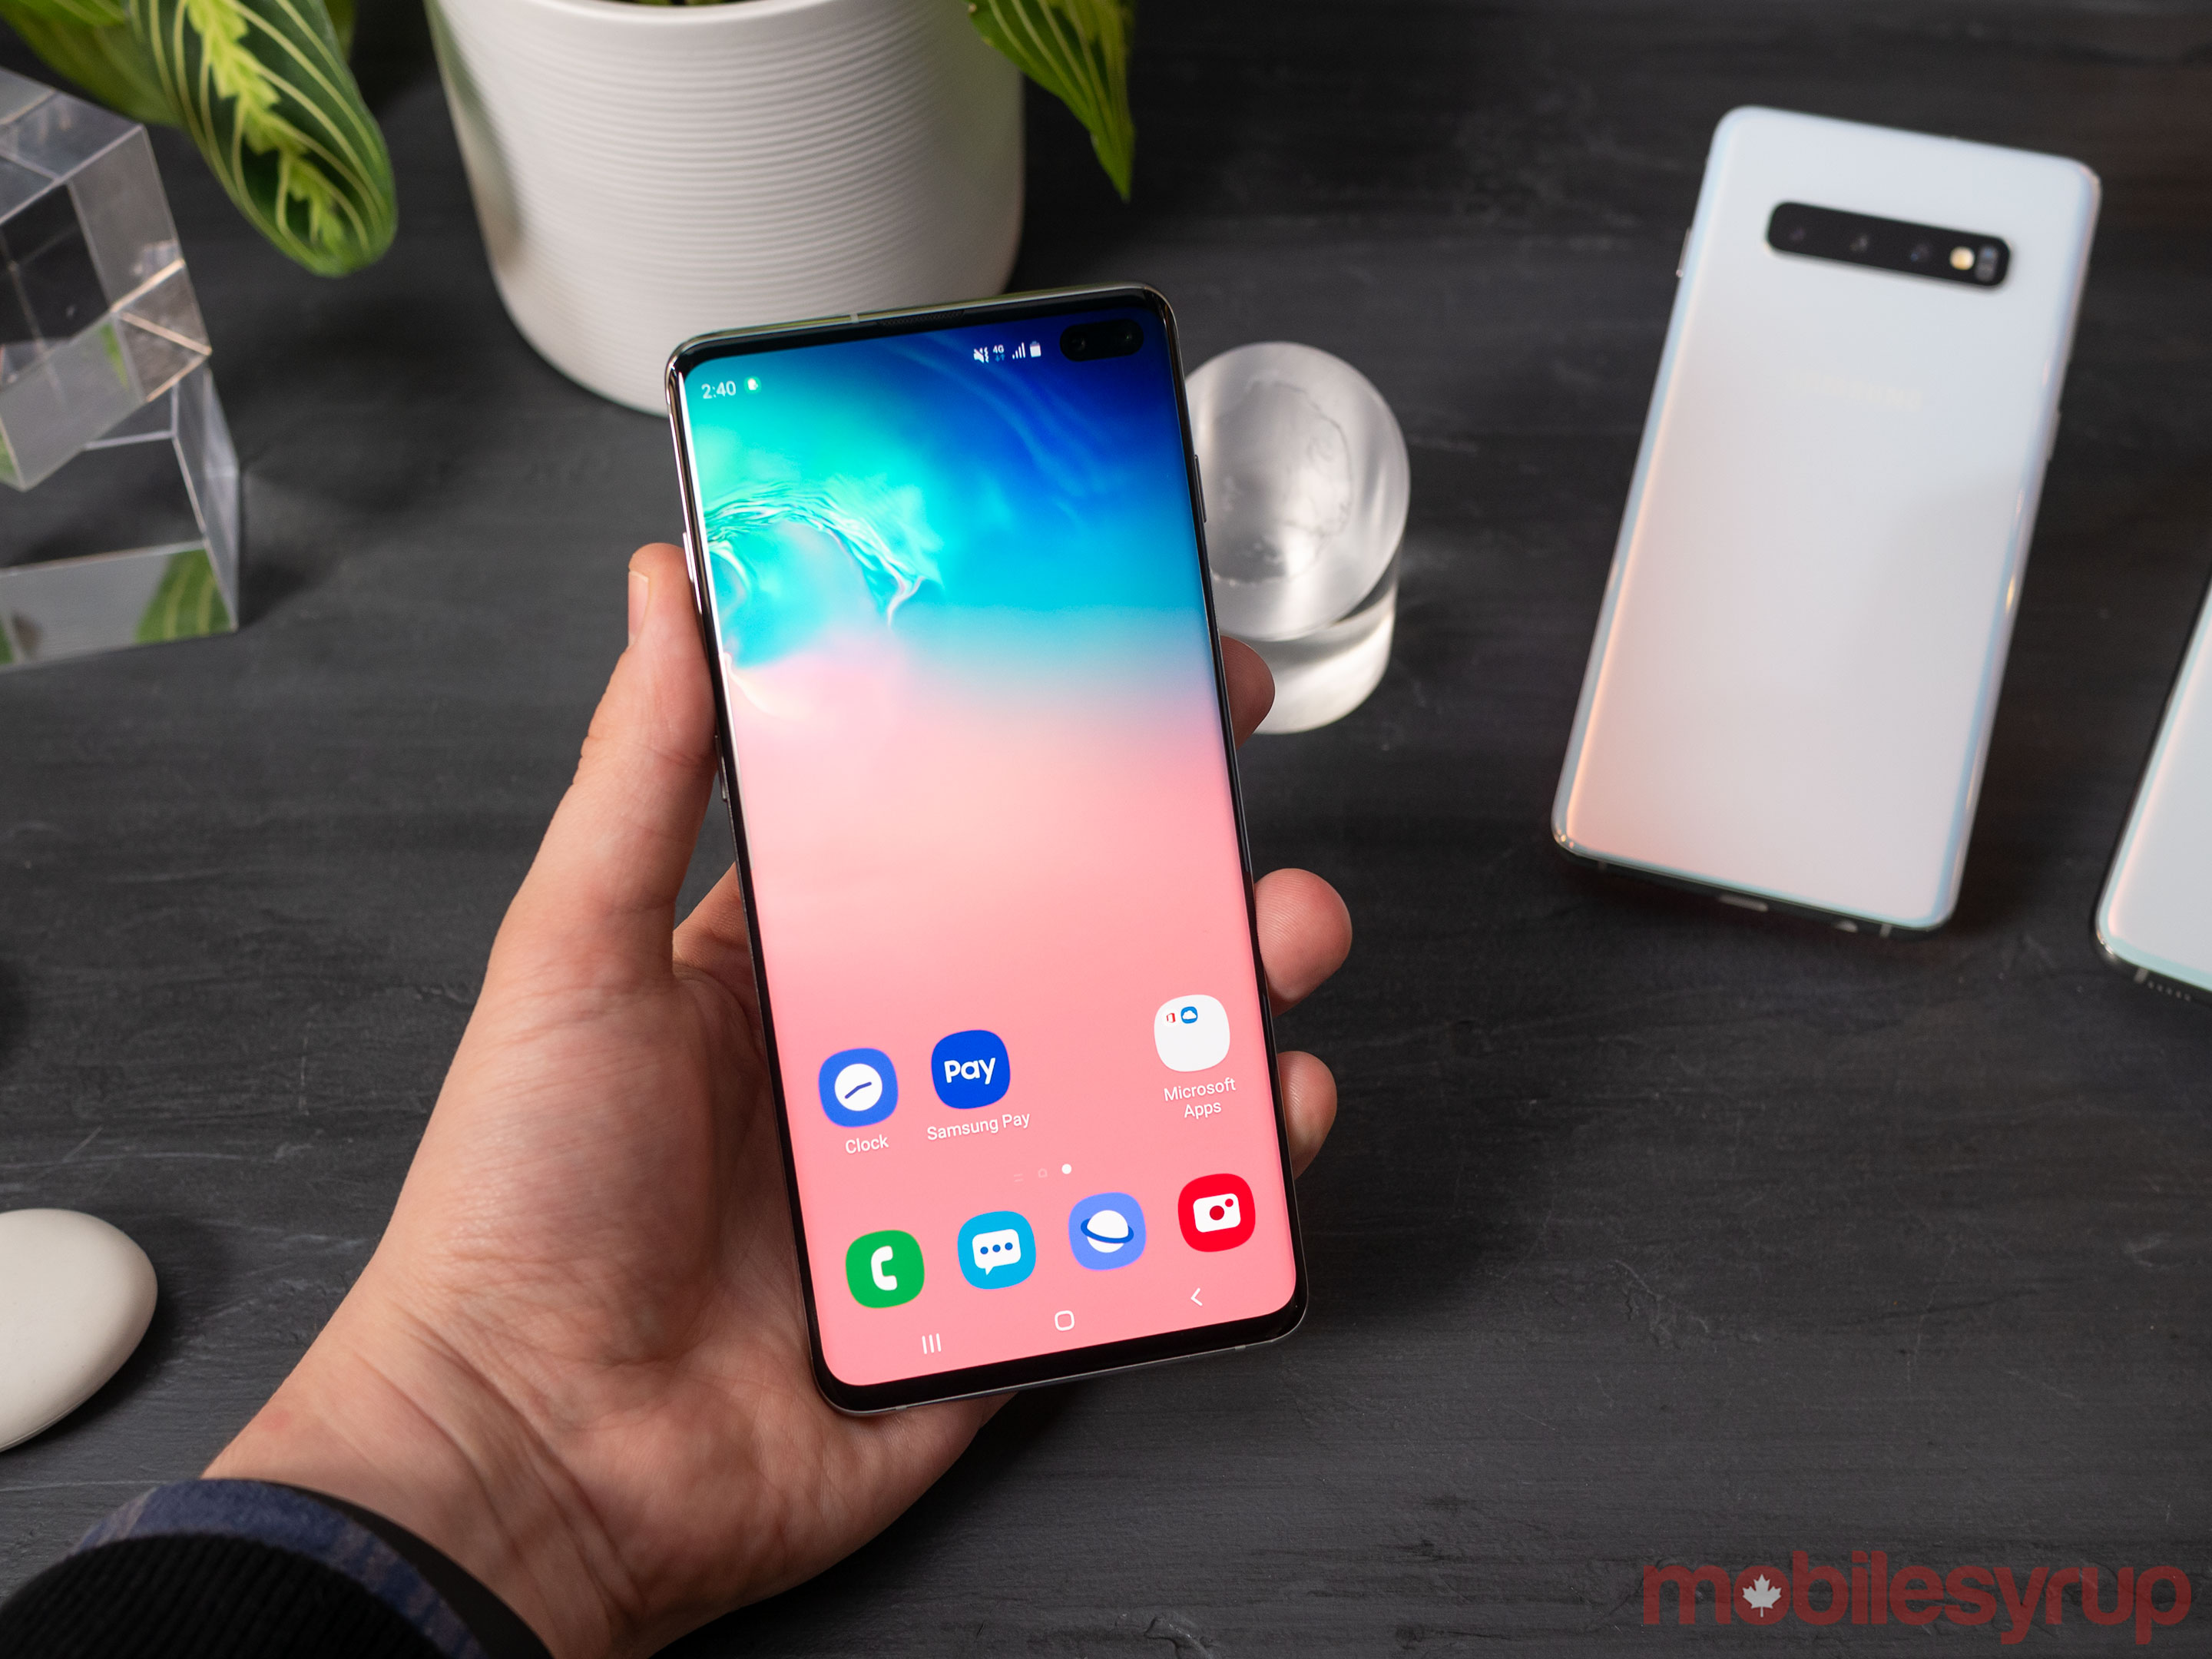 Samsung Galaxy S10, S10+ and S10e Canadian pricing, availability and